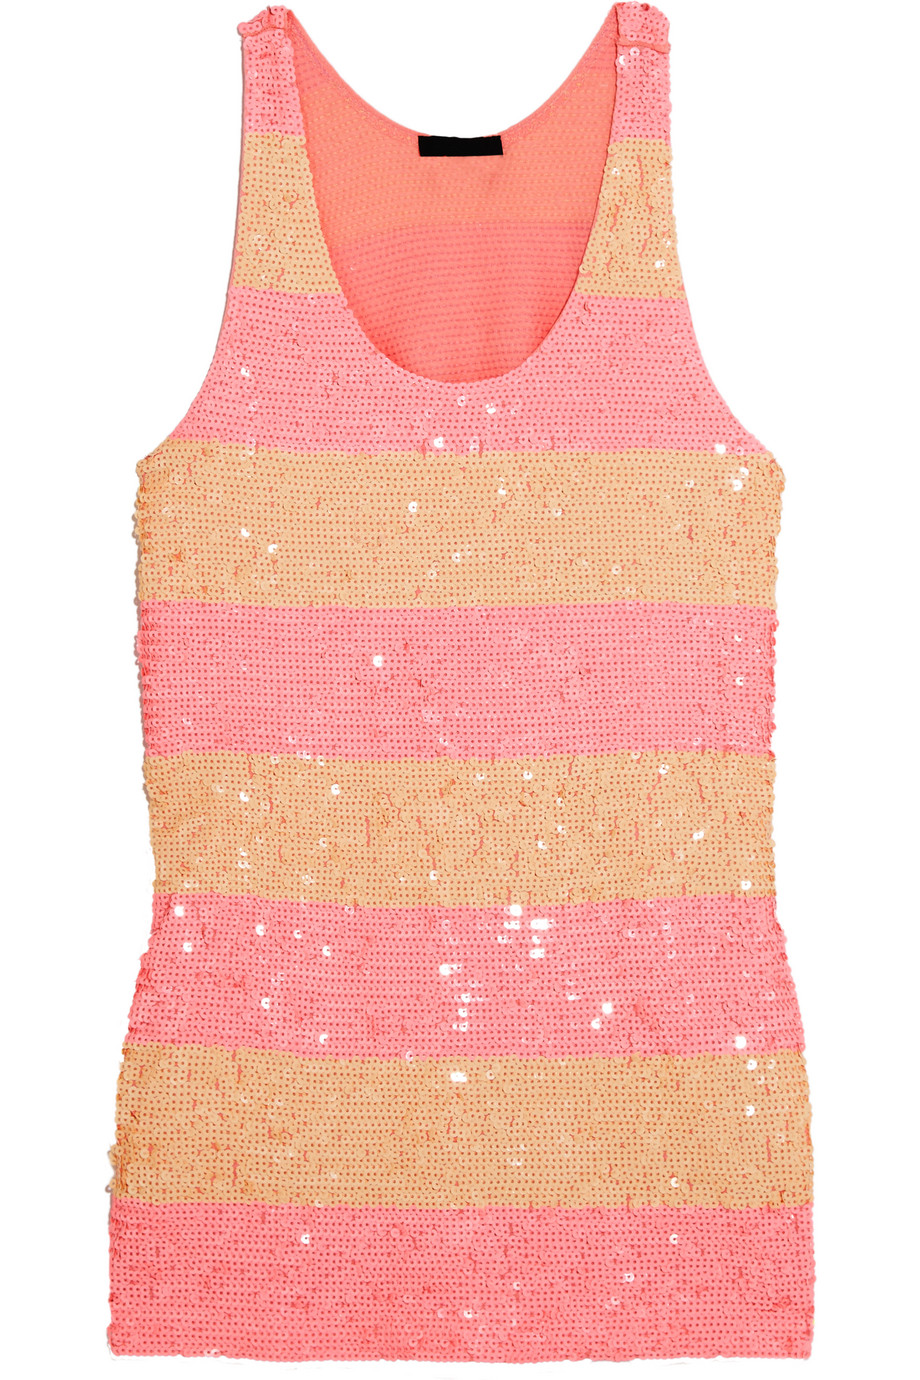 J.Crew Collection Sequined Cotton Tunic, Pink, Women's, Size: L